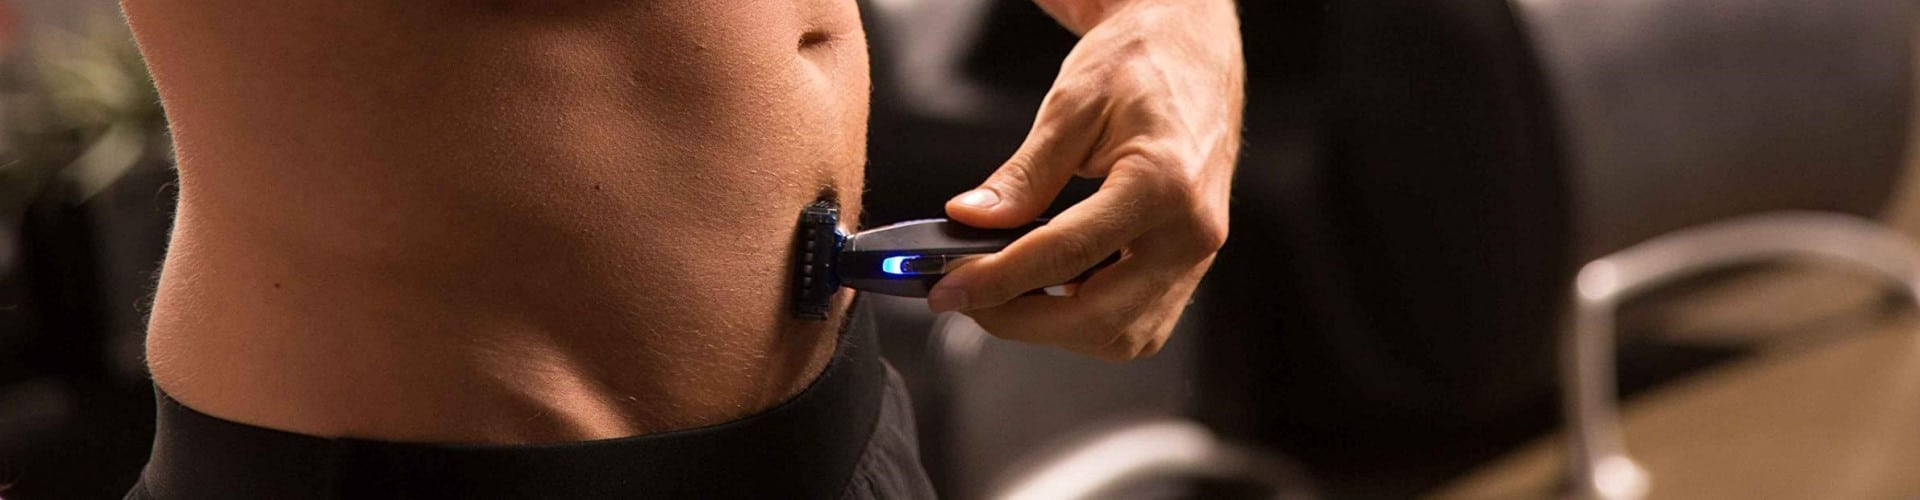 Best Trimmers for Balls